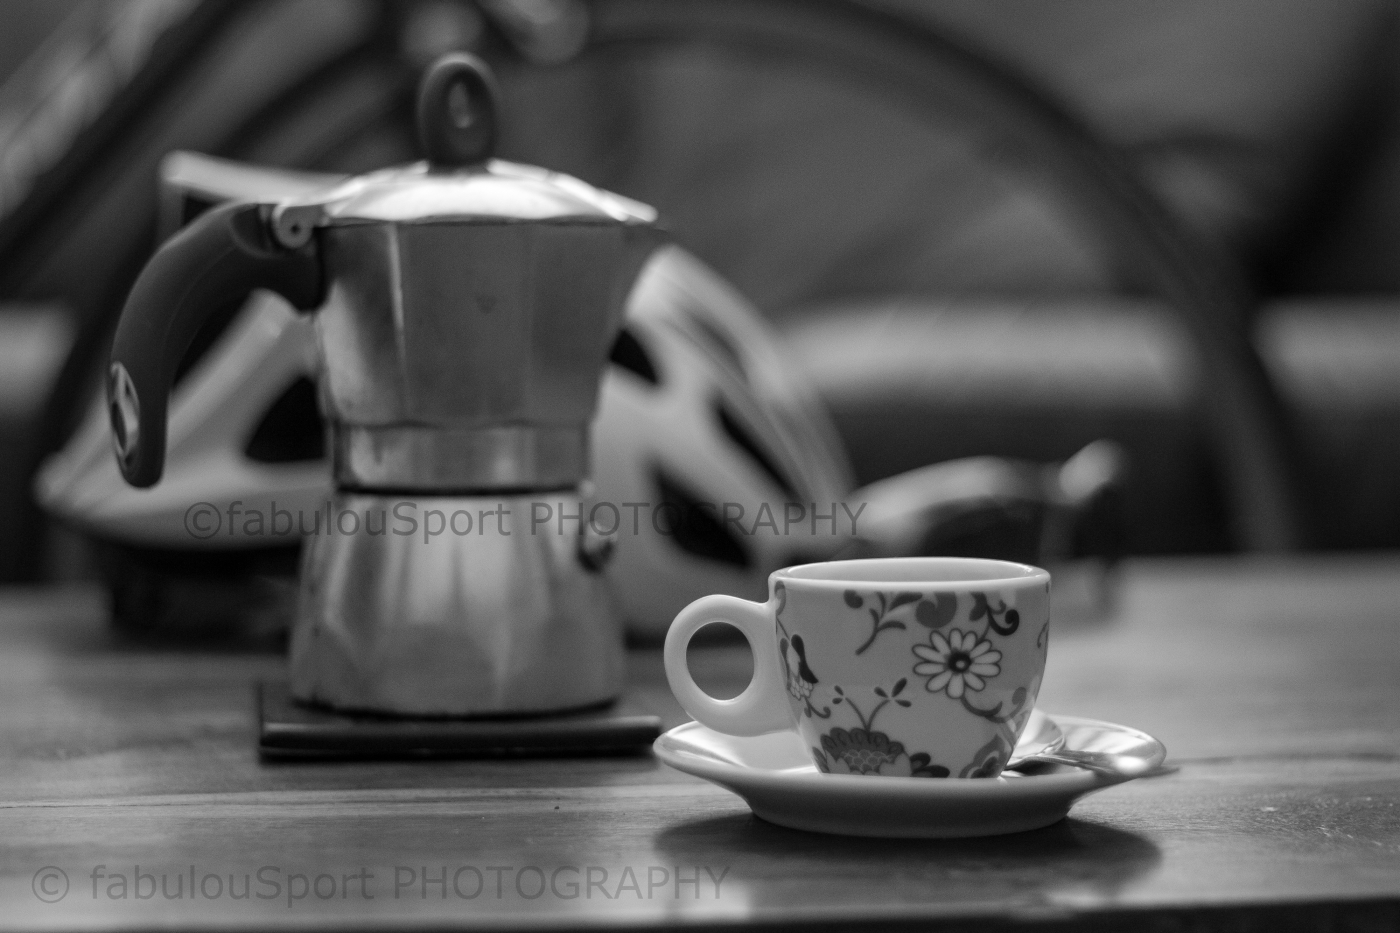 Cycling and coffee @fabulousport